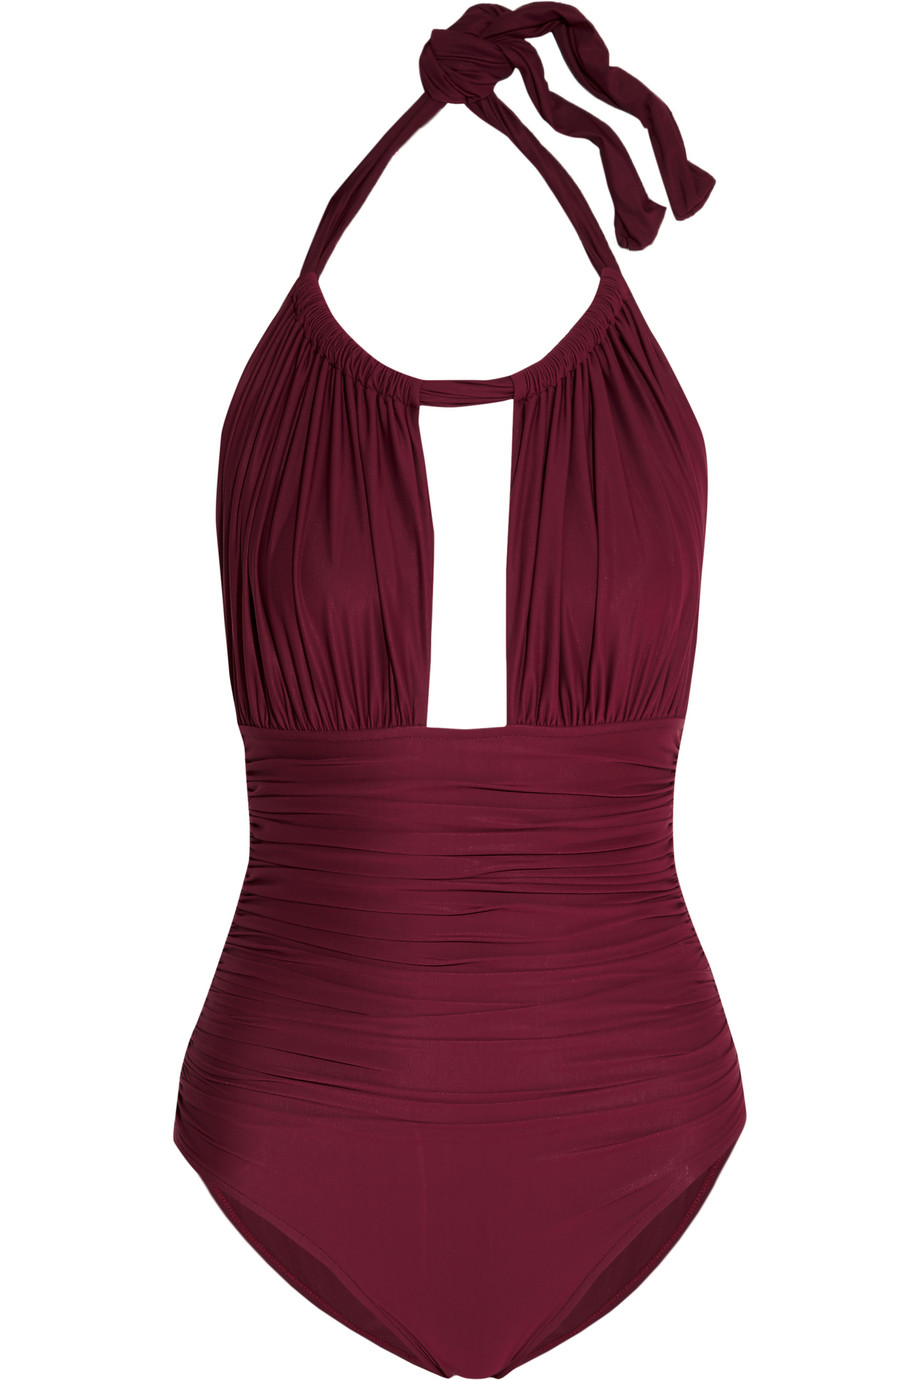 Ruched Cutout Swimsuit, Burgundy, Women's, Size: M